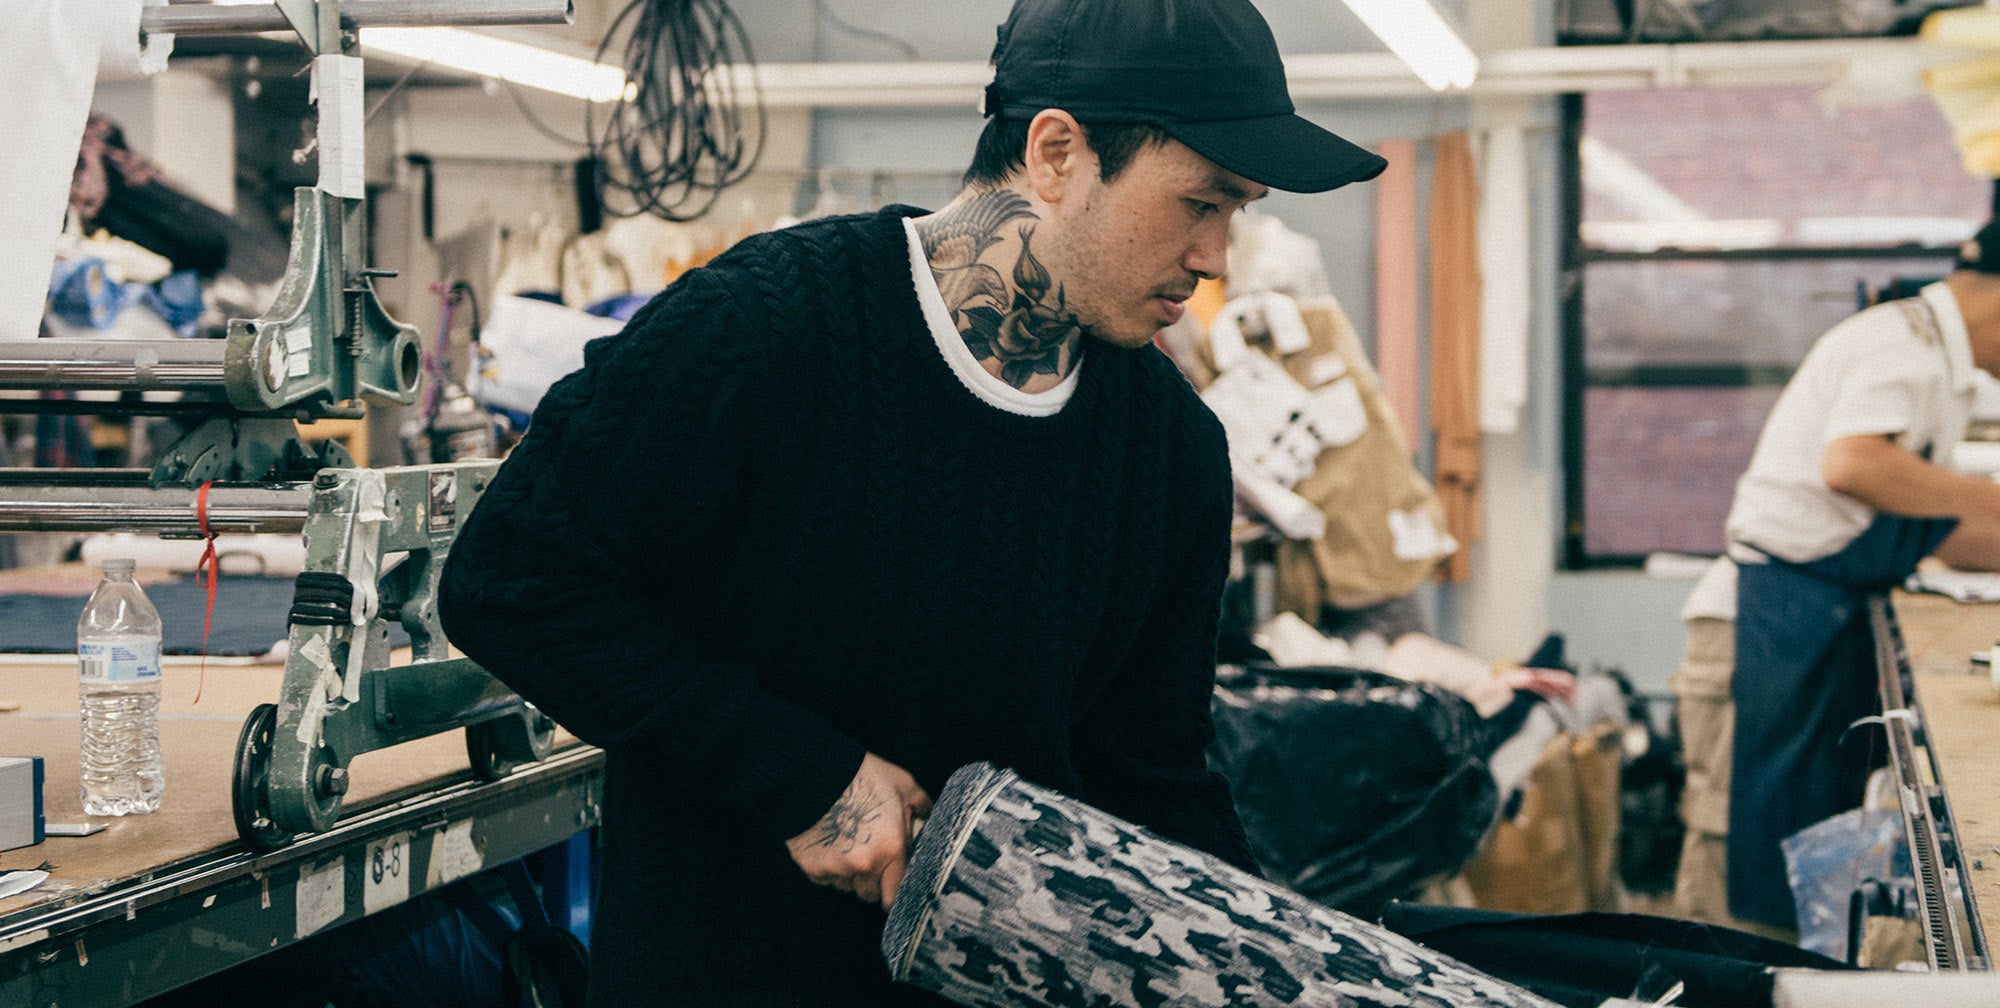 New York Designer Kenneth Ning for A Day in The Life Series - ONS Clothing Urban Transplants.